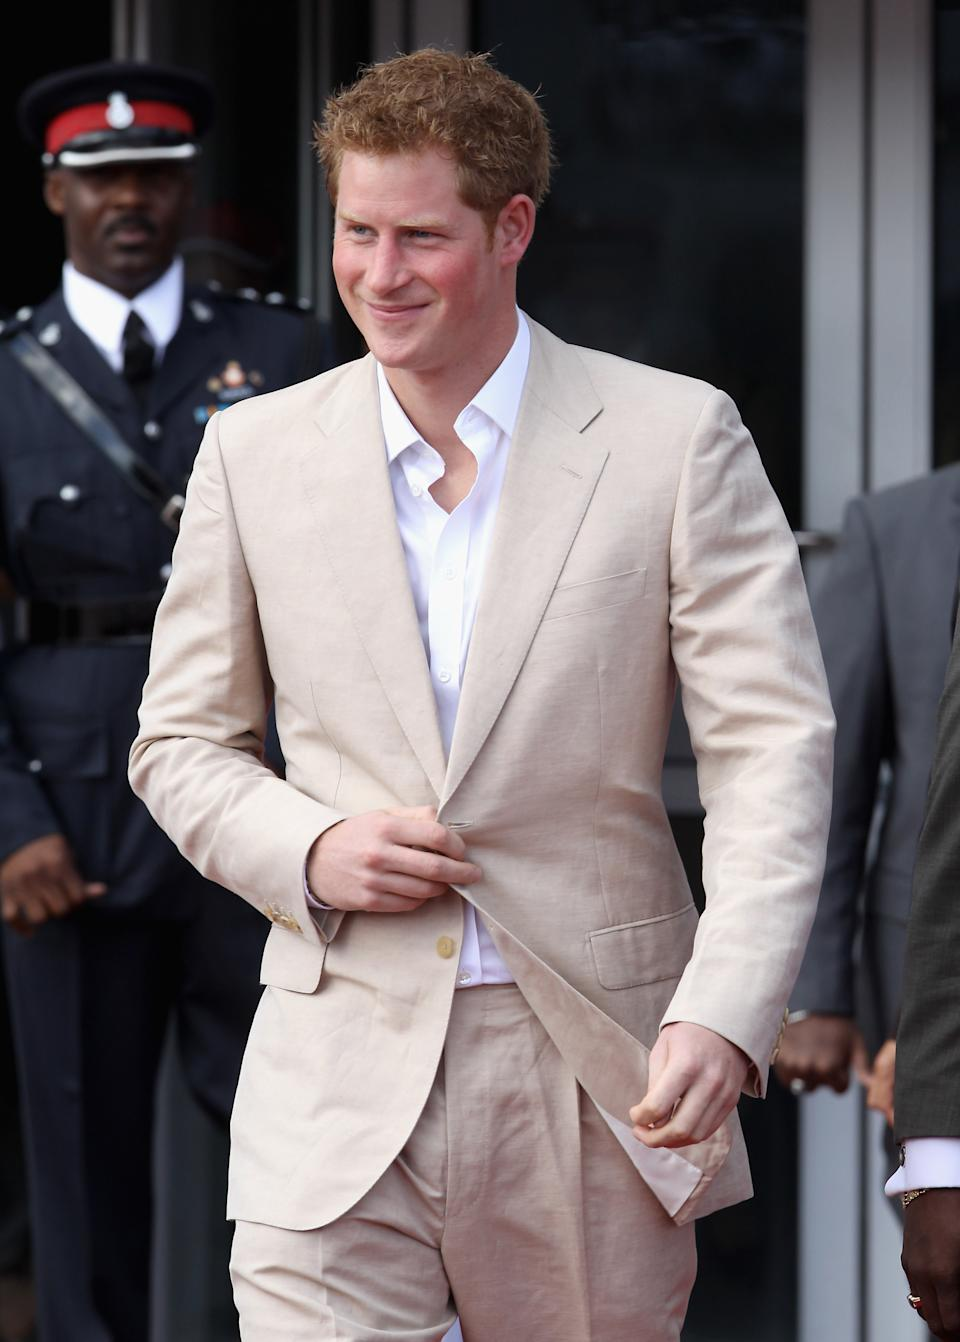 Prince Harry in 2012